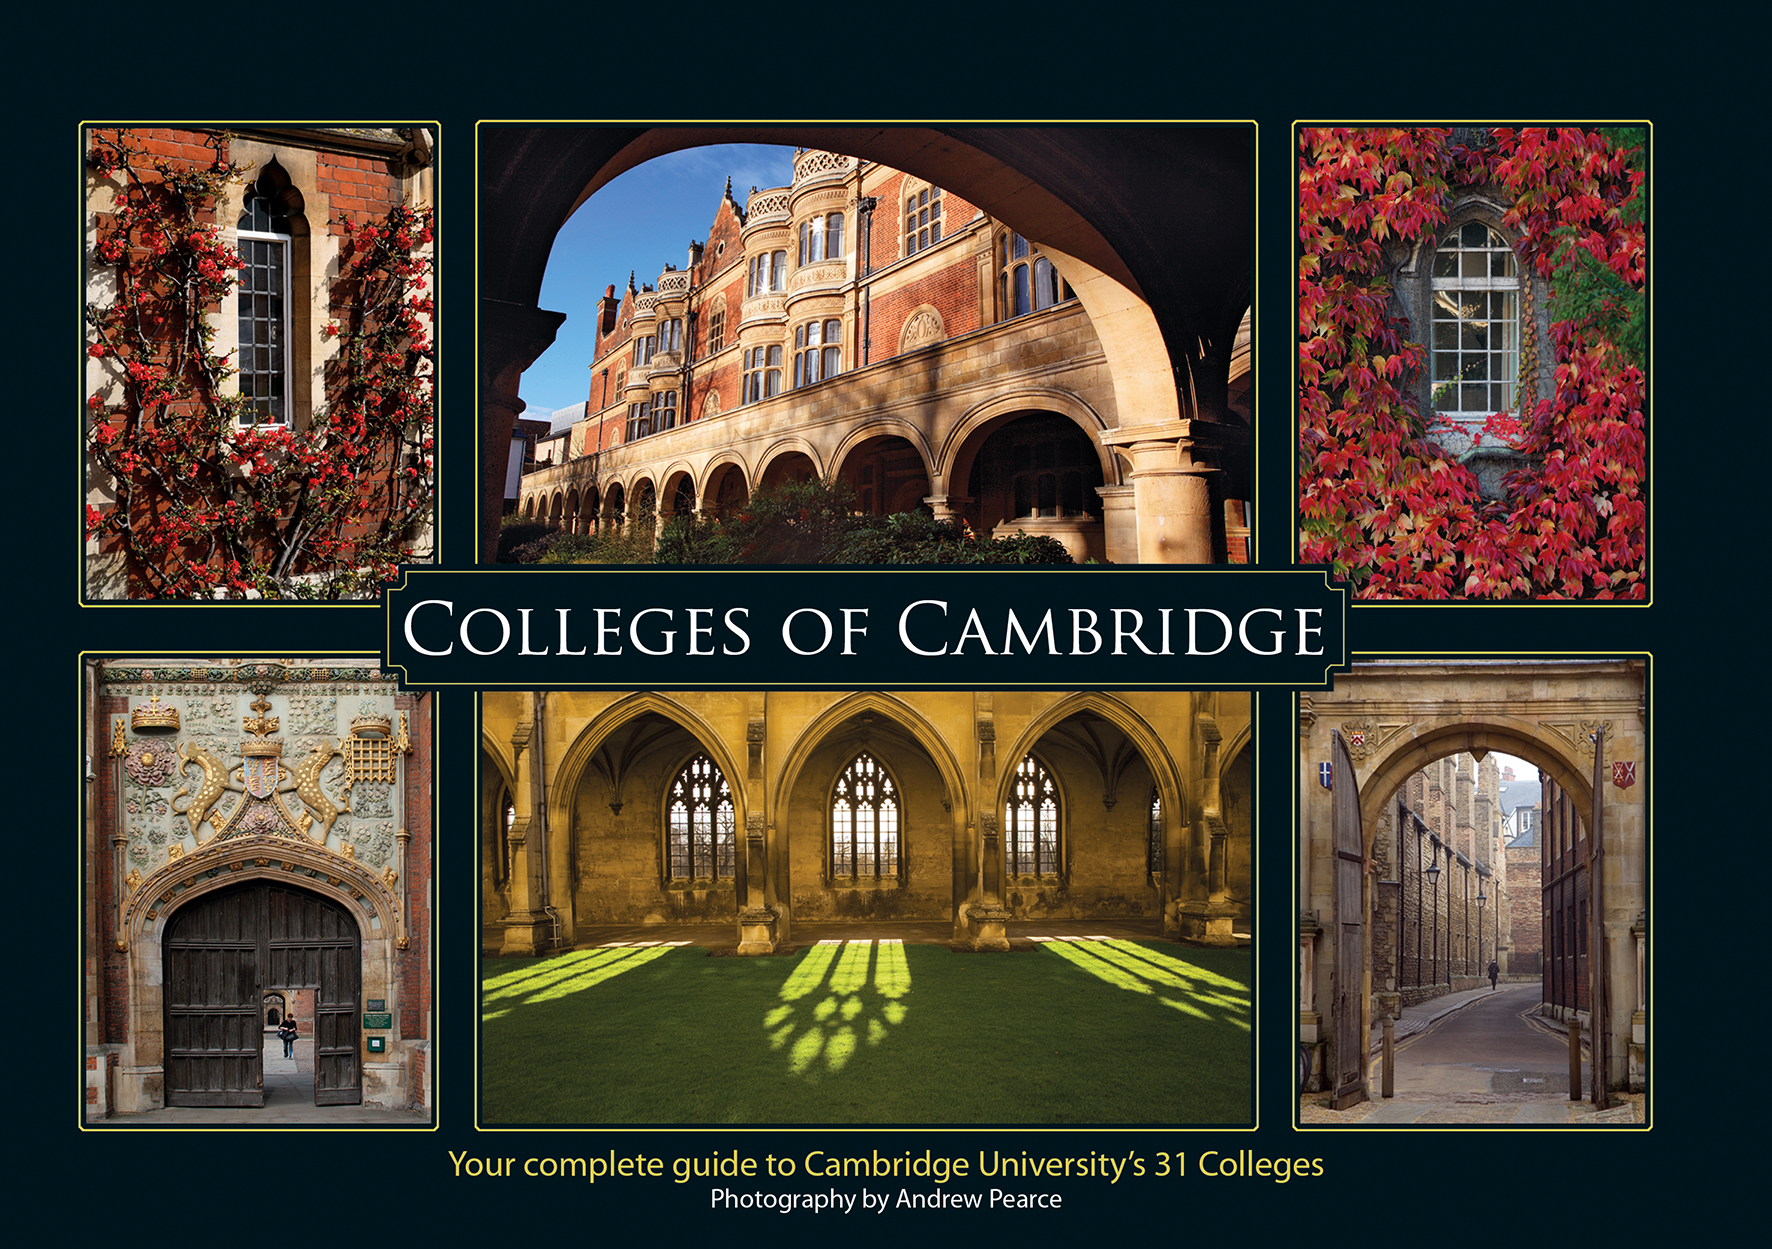 Please click here to view Colleges of Cambridge